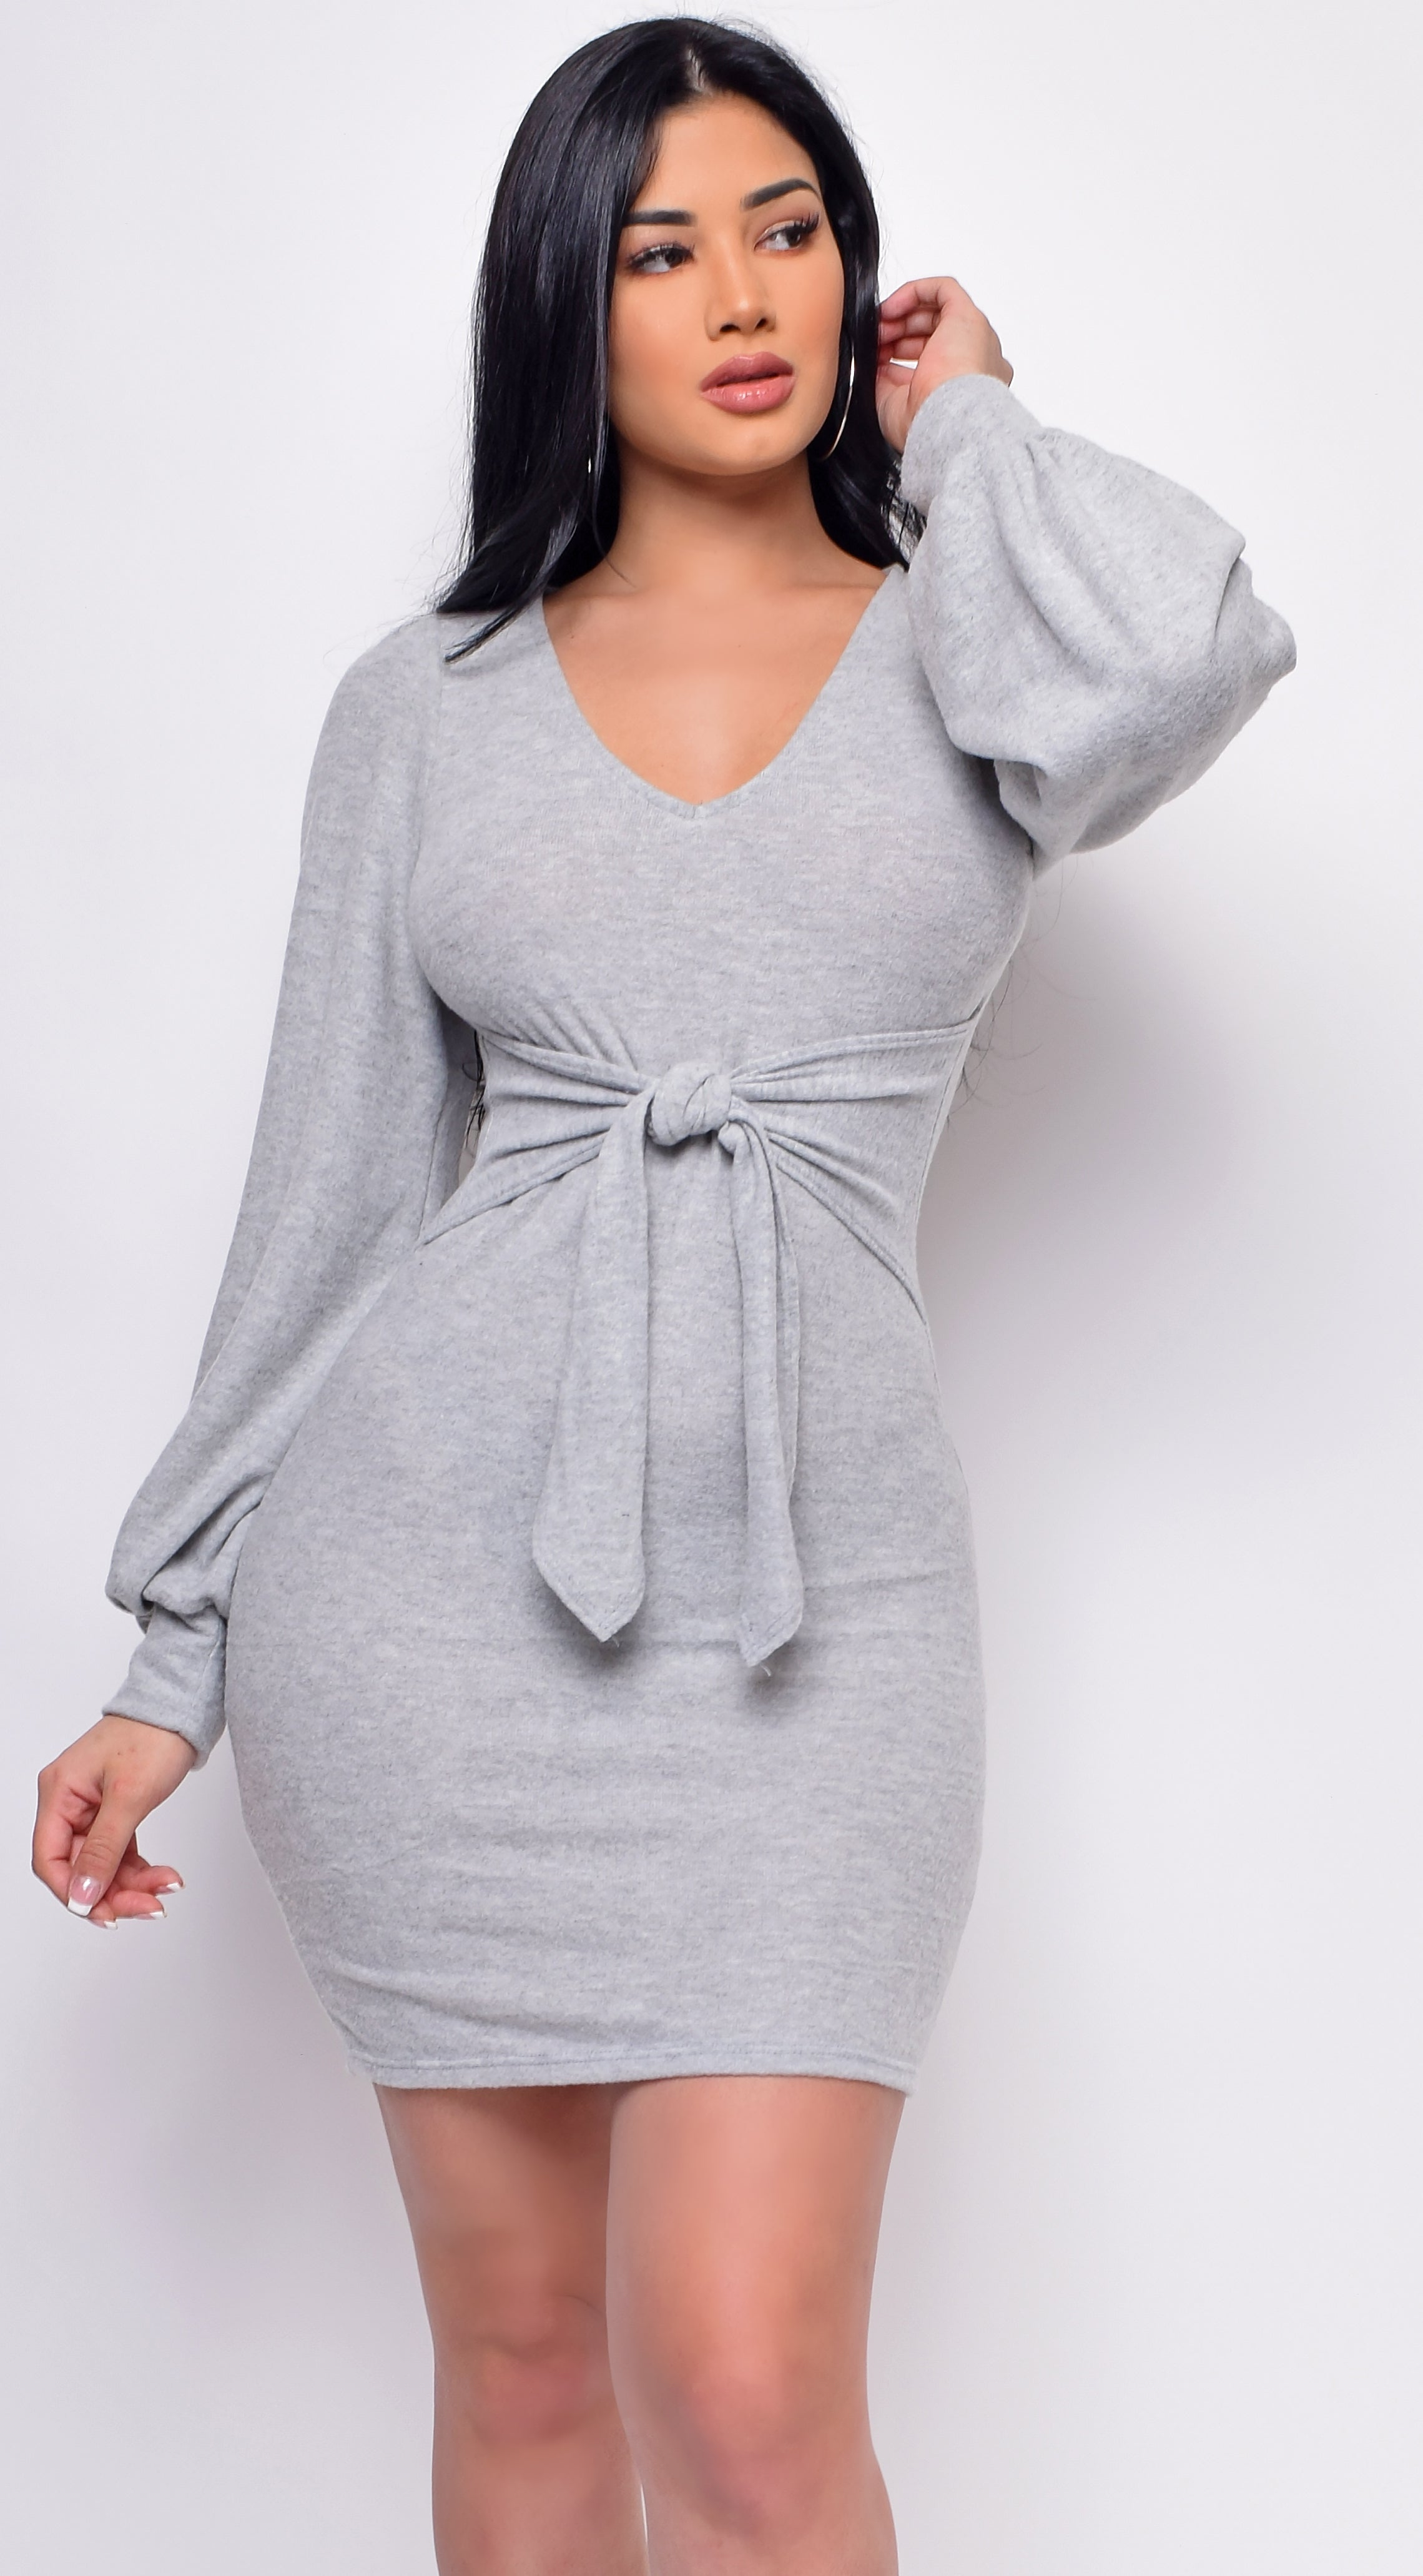 Ultimate Grey Waist Tie Mini Dress